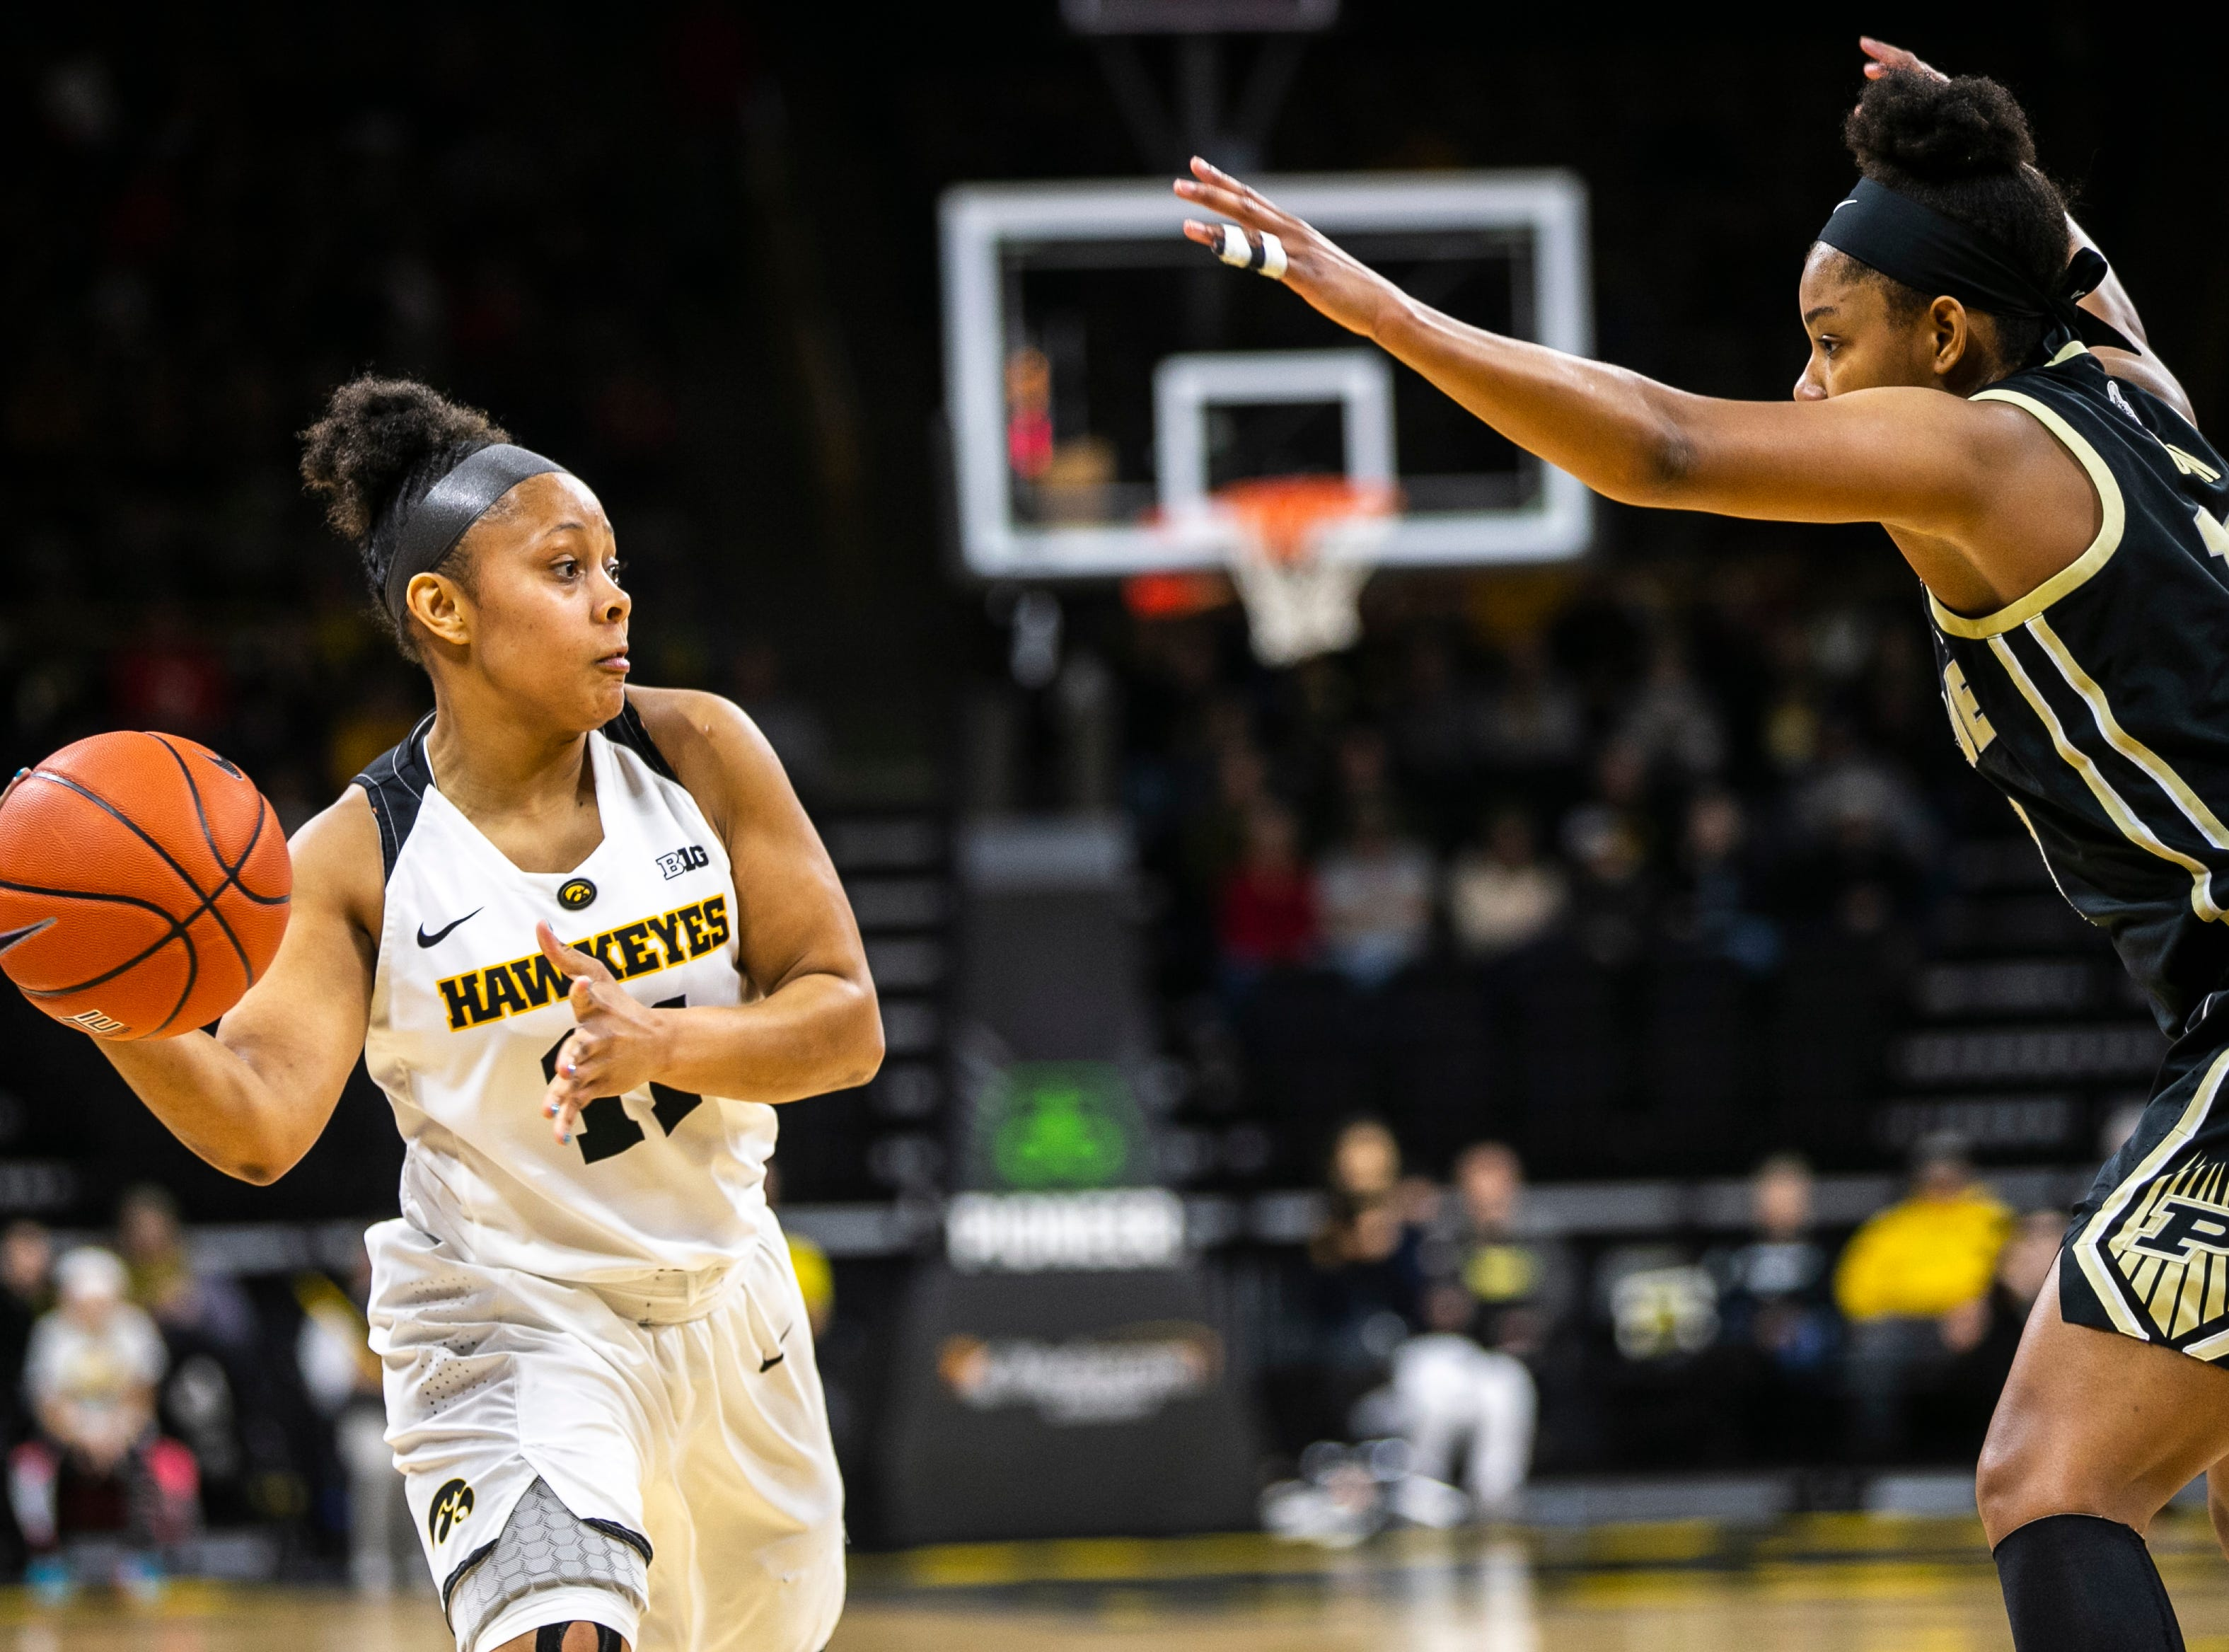 Iowa guard Tania Davis, left, gets defended by Purdue guard Dominique Oden (11) during a NCAA Big Ten Conference women's basketball game on Sunday, Jan. 27, 2019, at Carver-Hawkeye Arena in Iowa City, Iowa.